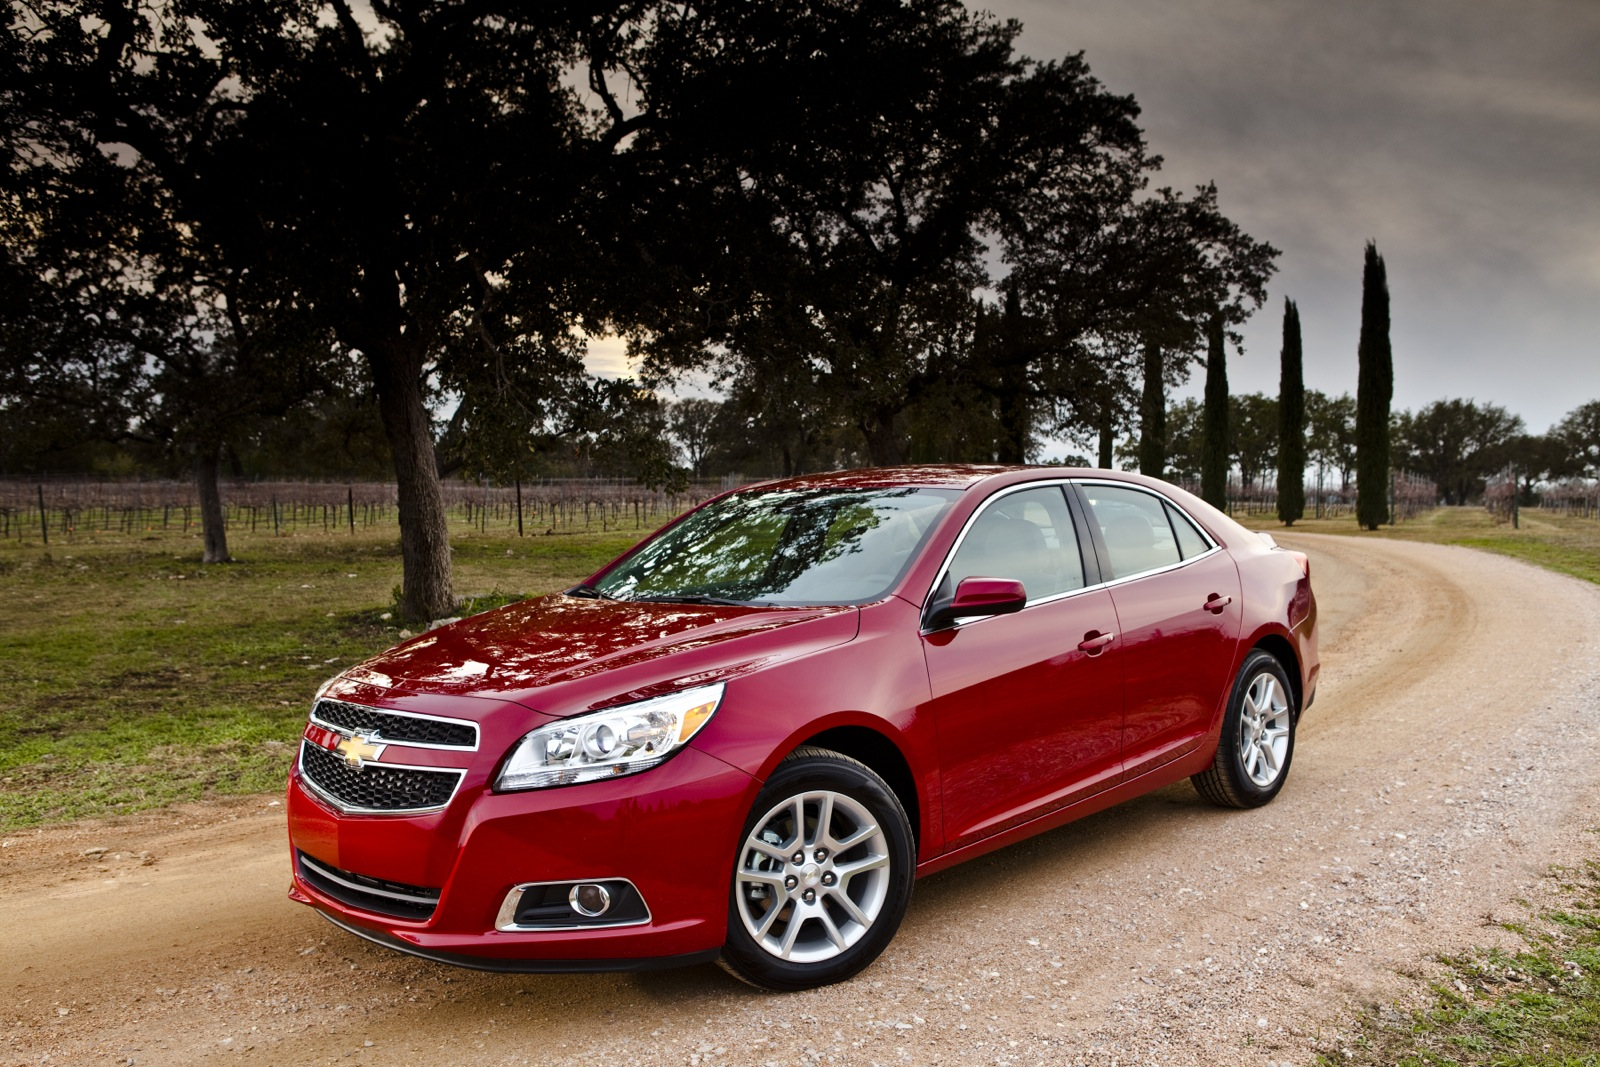 2013 Chevy Malibu Lt >> 2013 Chevrolet Malibu Chevy Review Ratings Specs Prices